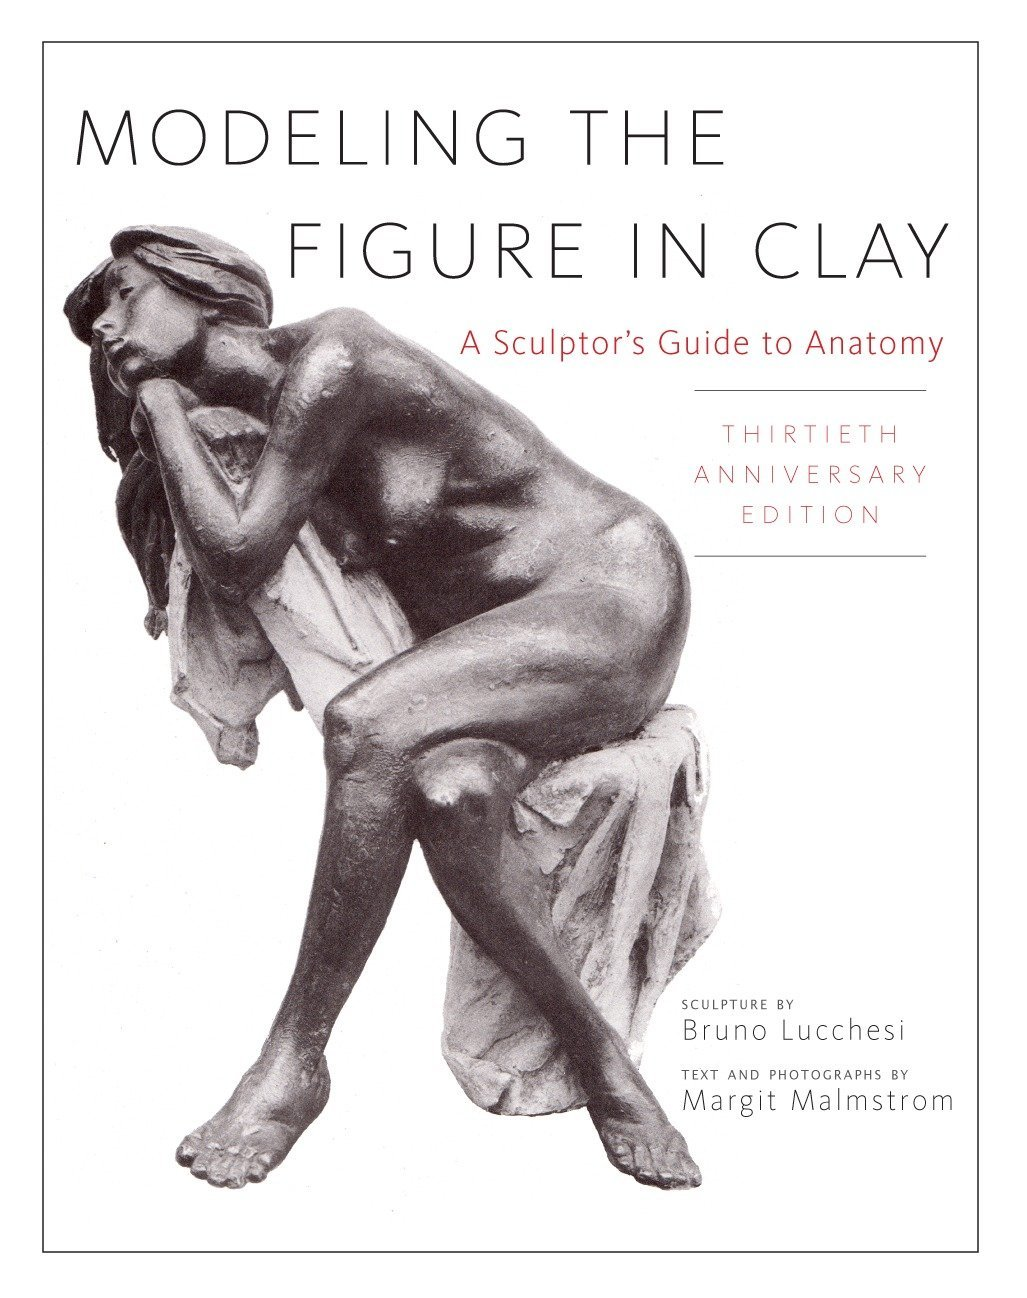 Modeling the Figure in Clay, 30th Anniversary Edition: A